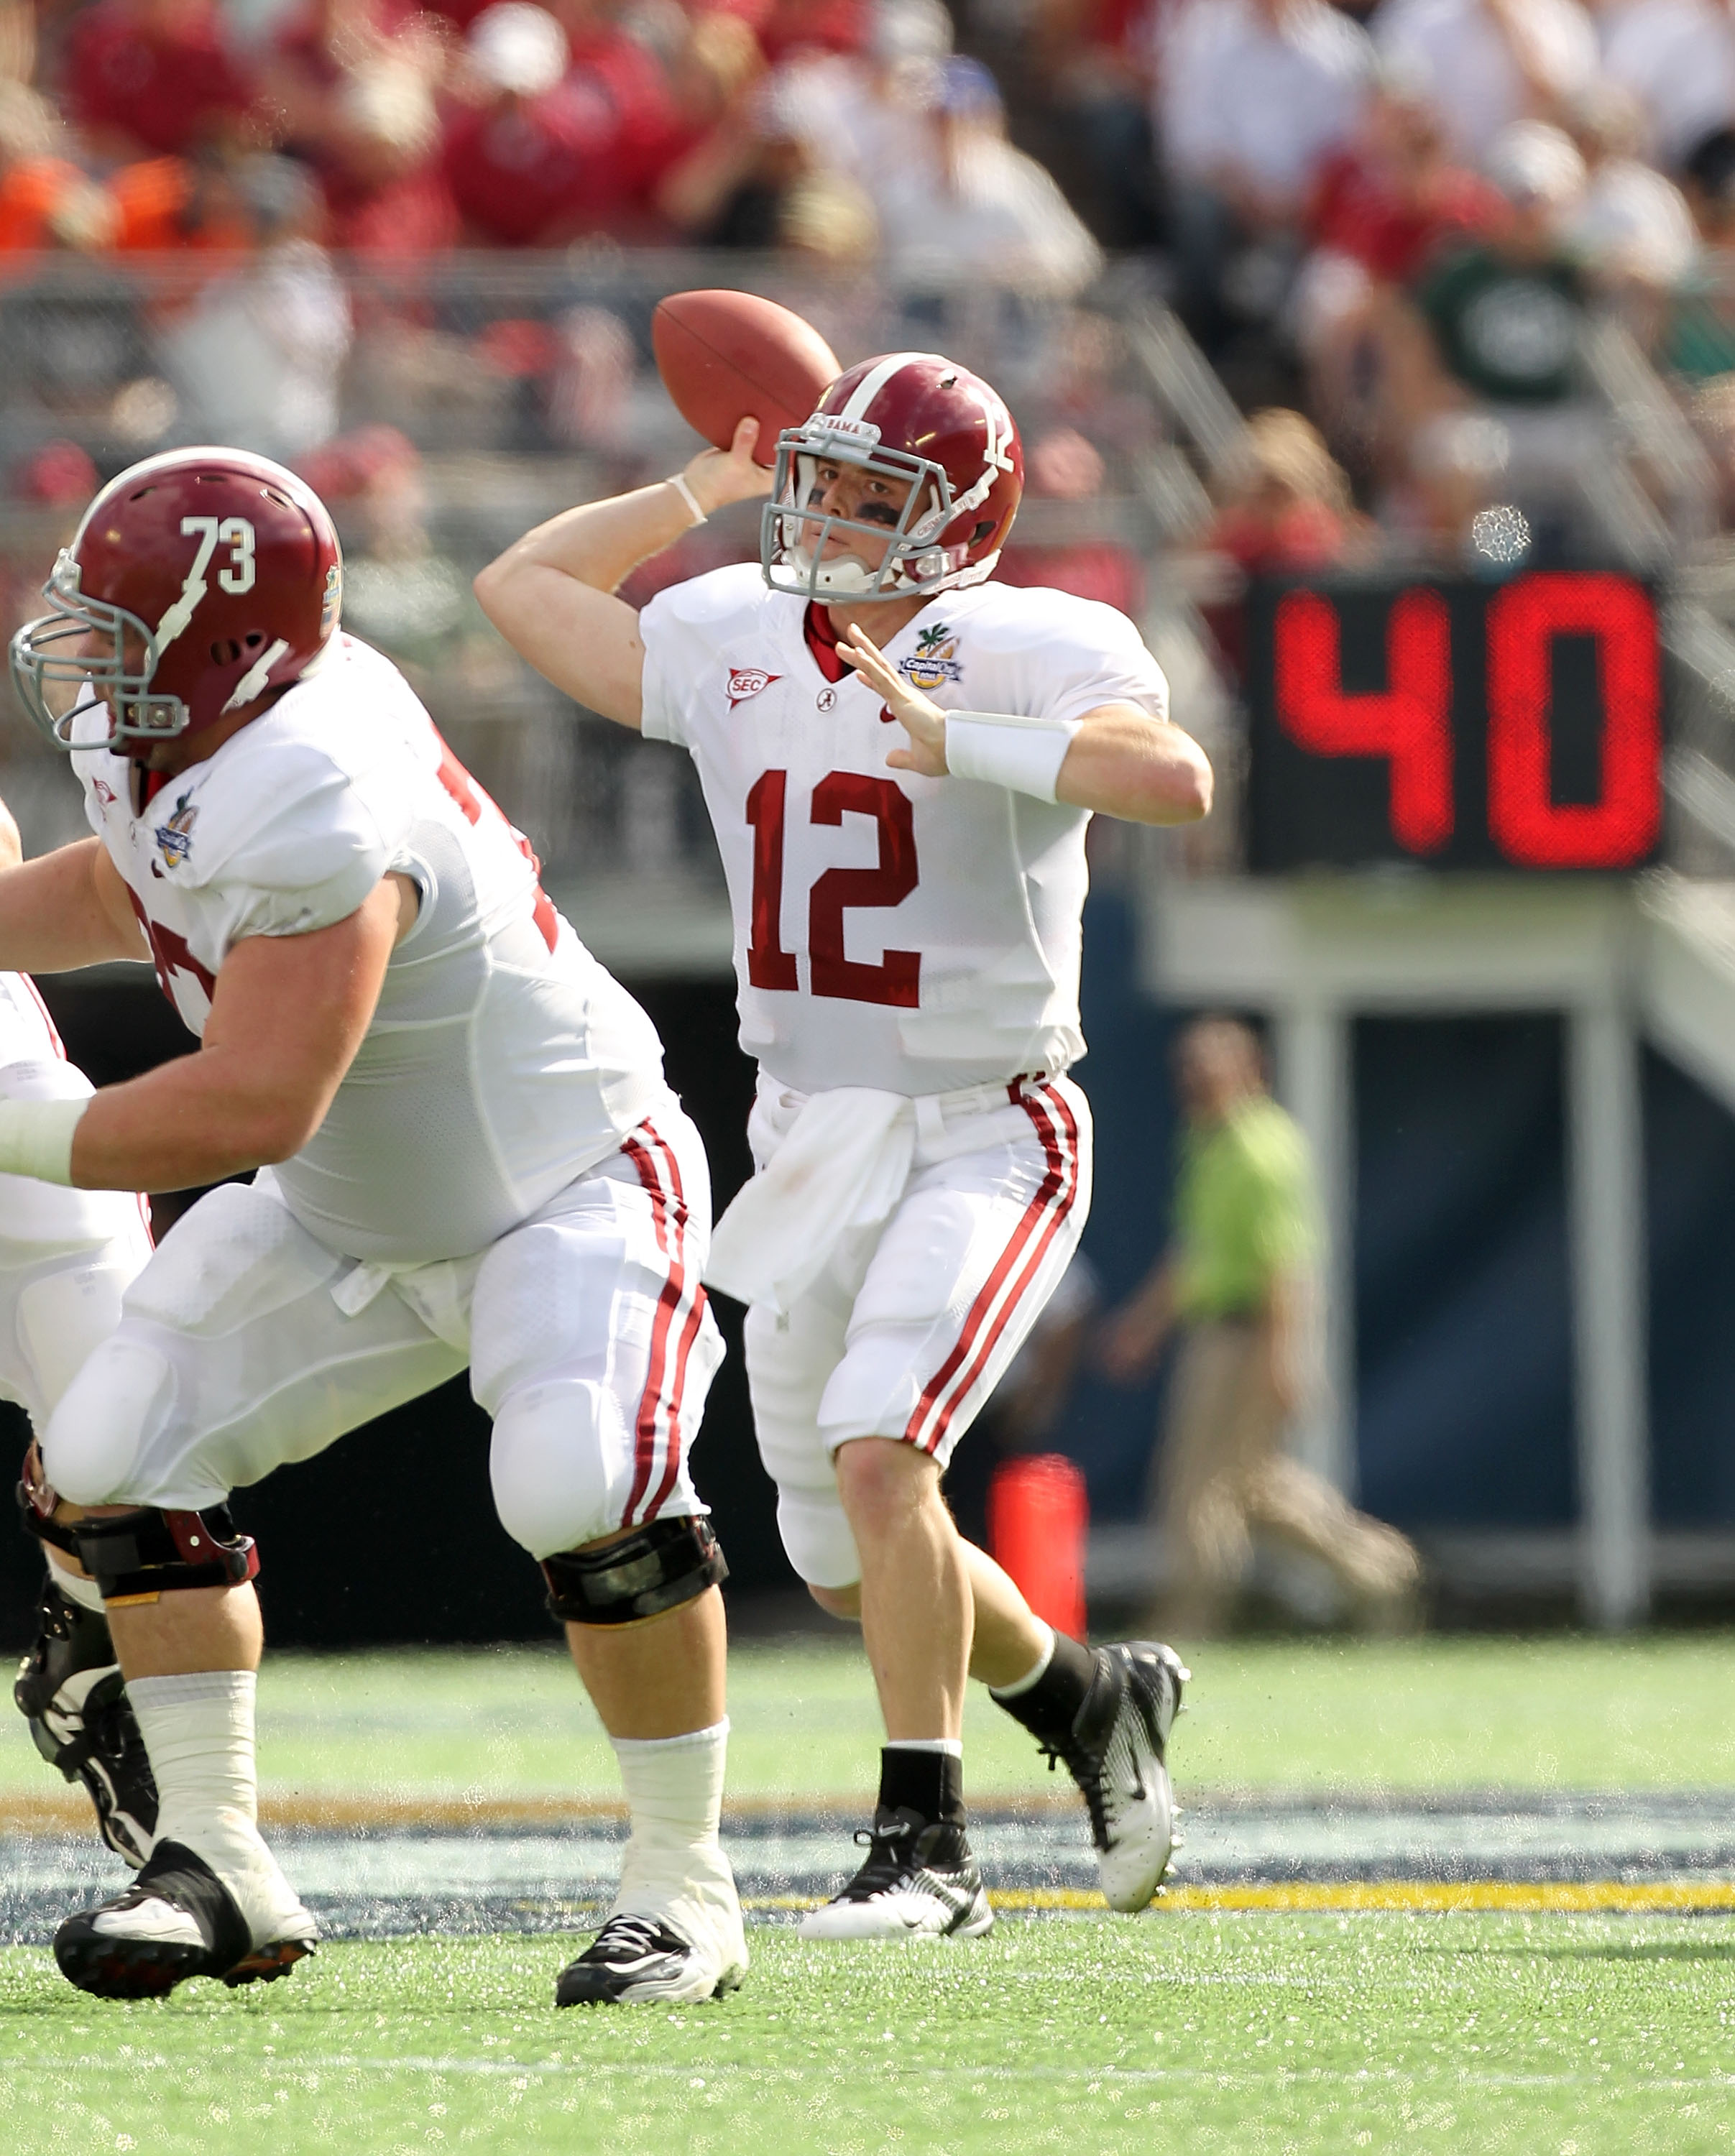 ORLANDO, FL - JANUARY 01:  Greg McElroy #12 of the Alabama Crimson Tide passes the ball during the Capitol One Bowl against the Michigan State Spartans at the Florida Citrus Bowl on January 1, 2011 in Orlando, Florida.  (Photo by Mike Ehrmann/Getty Images